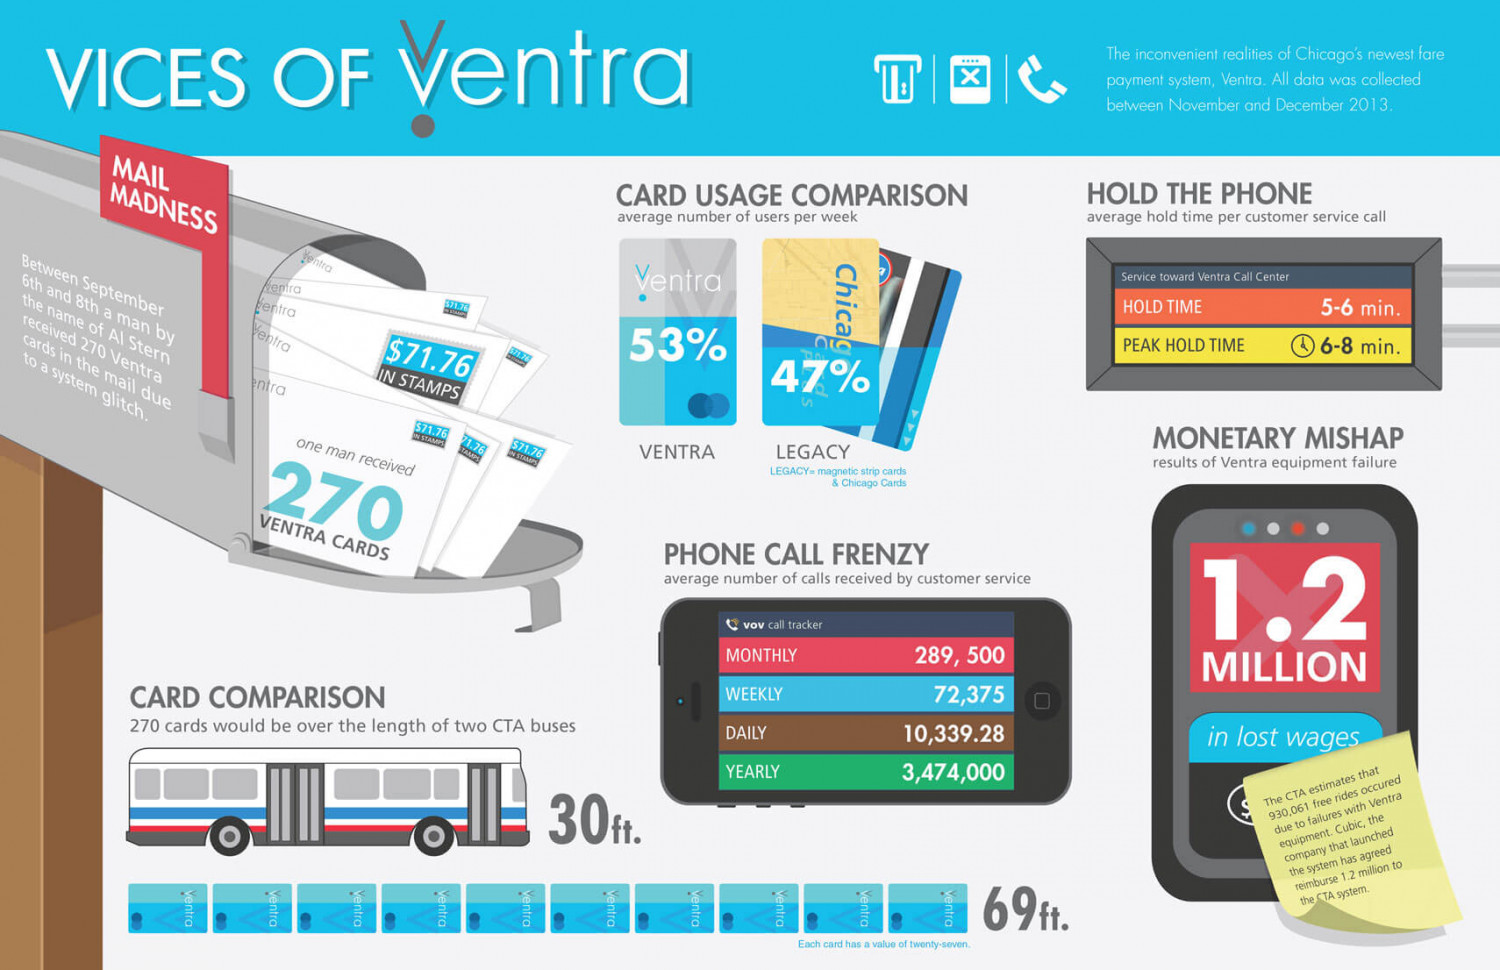 Vices of Ventra Infographic